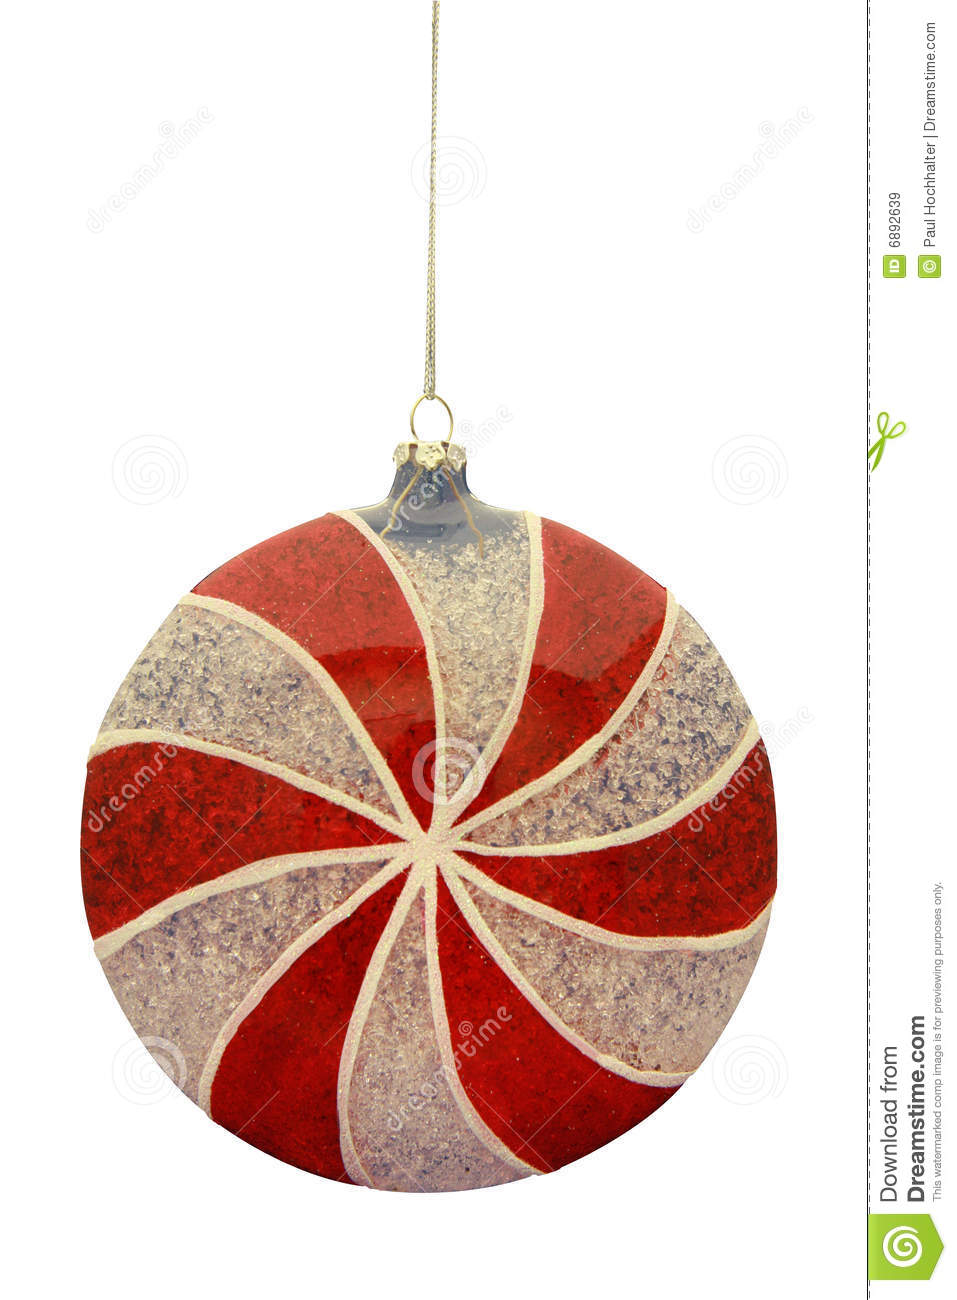 peppermint candy christmas ornament - Candy Christmas Ornaments